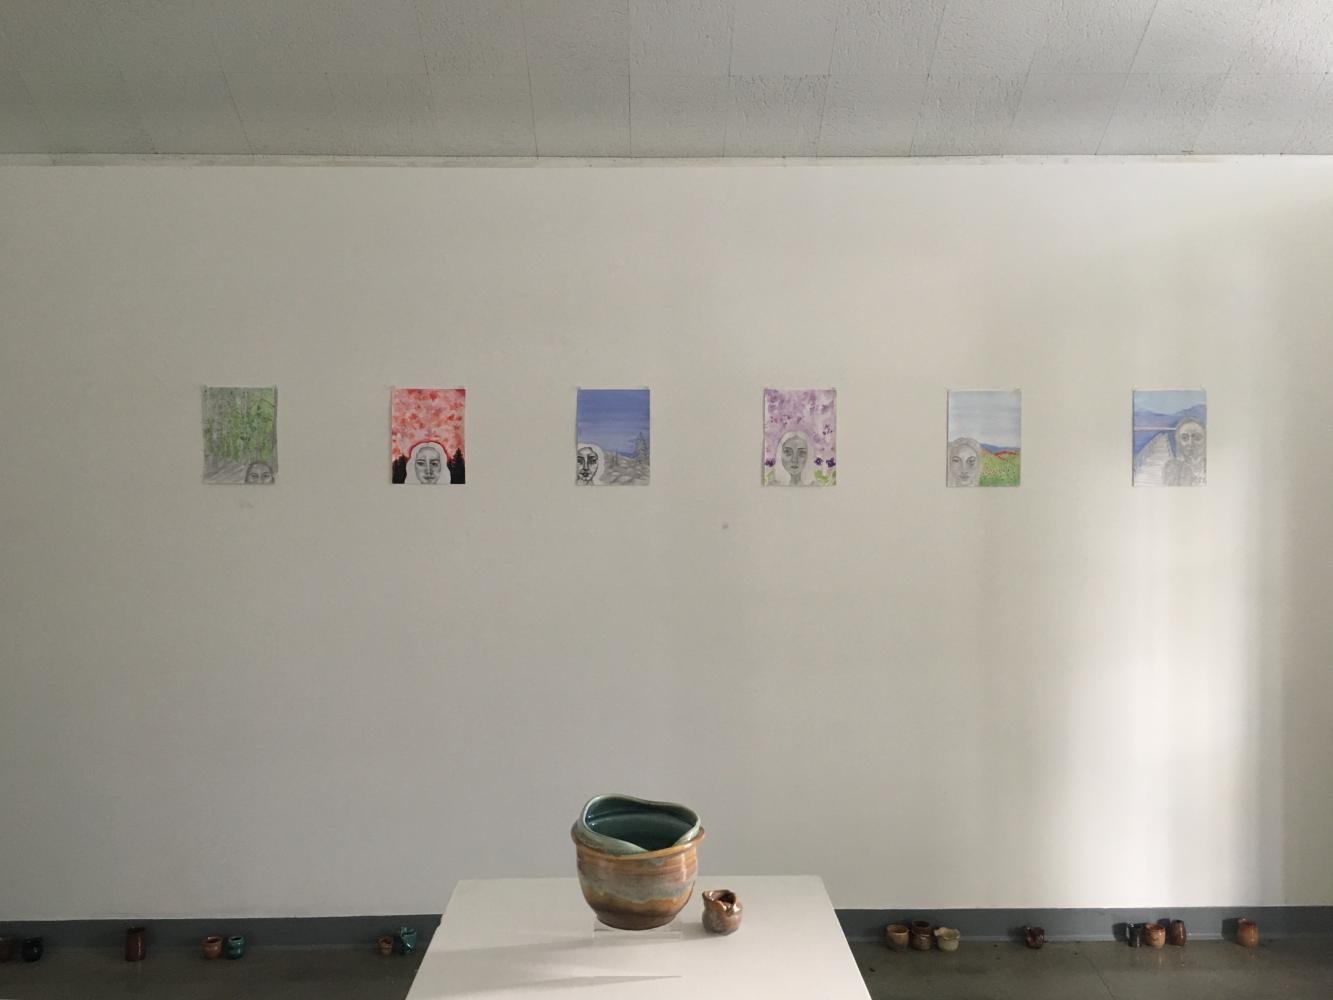 Ingrid Sant's visual art and Halle Jacobs' pottery in their show